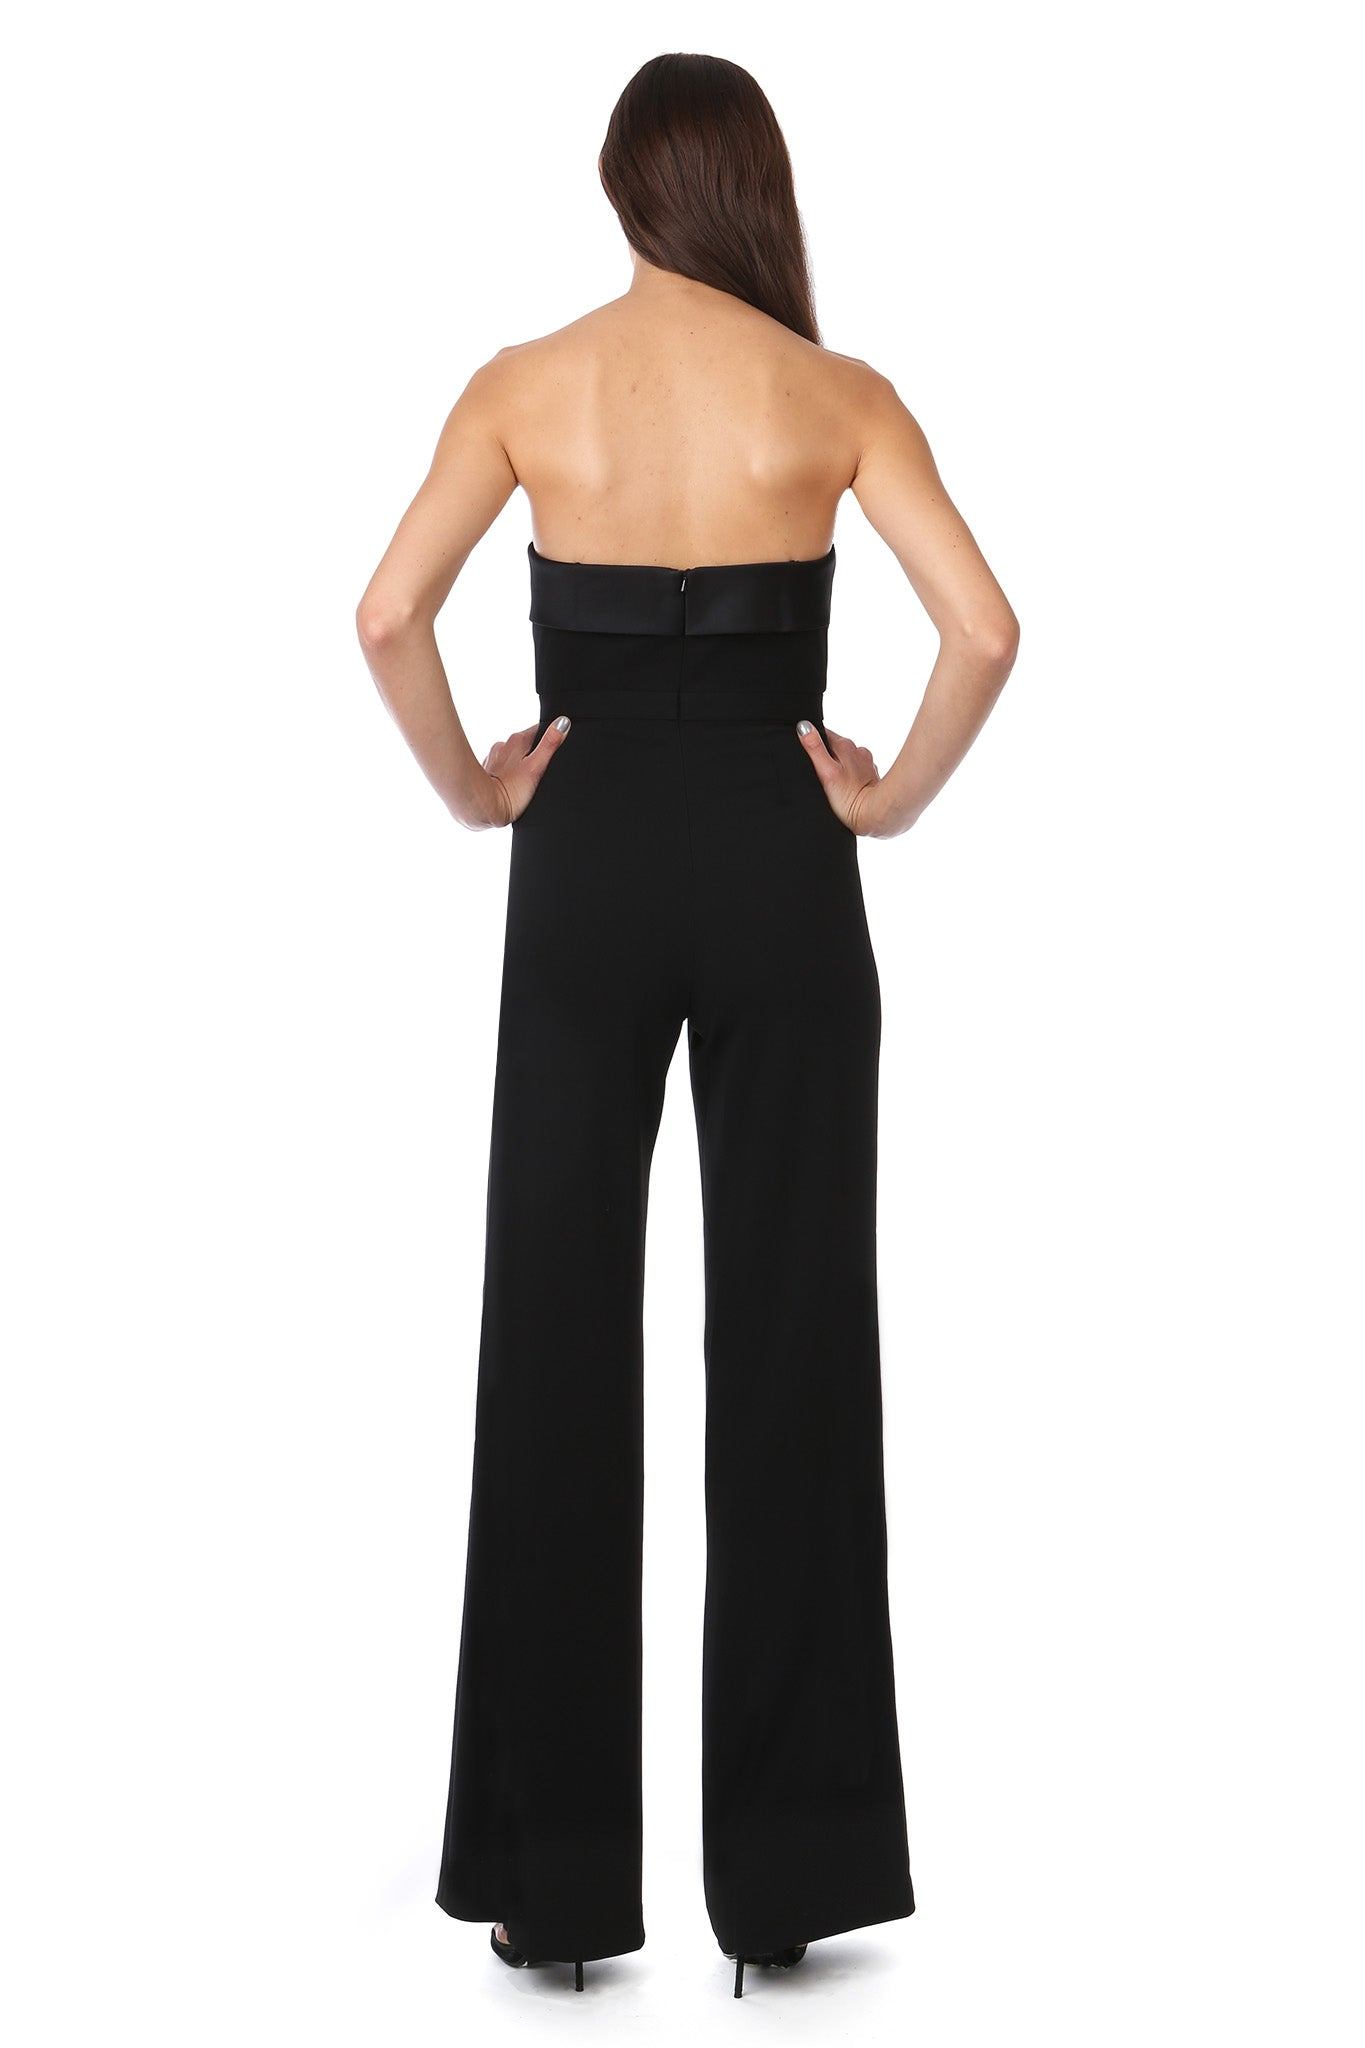 Black Silky Bandeau Strapless Jumpsuit - Back View